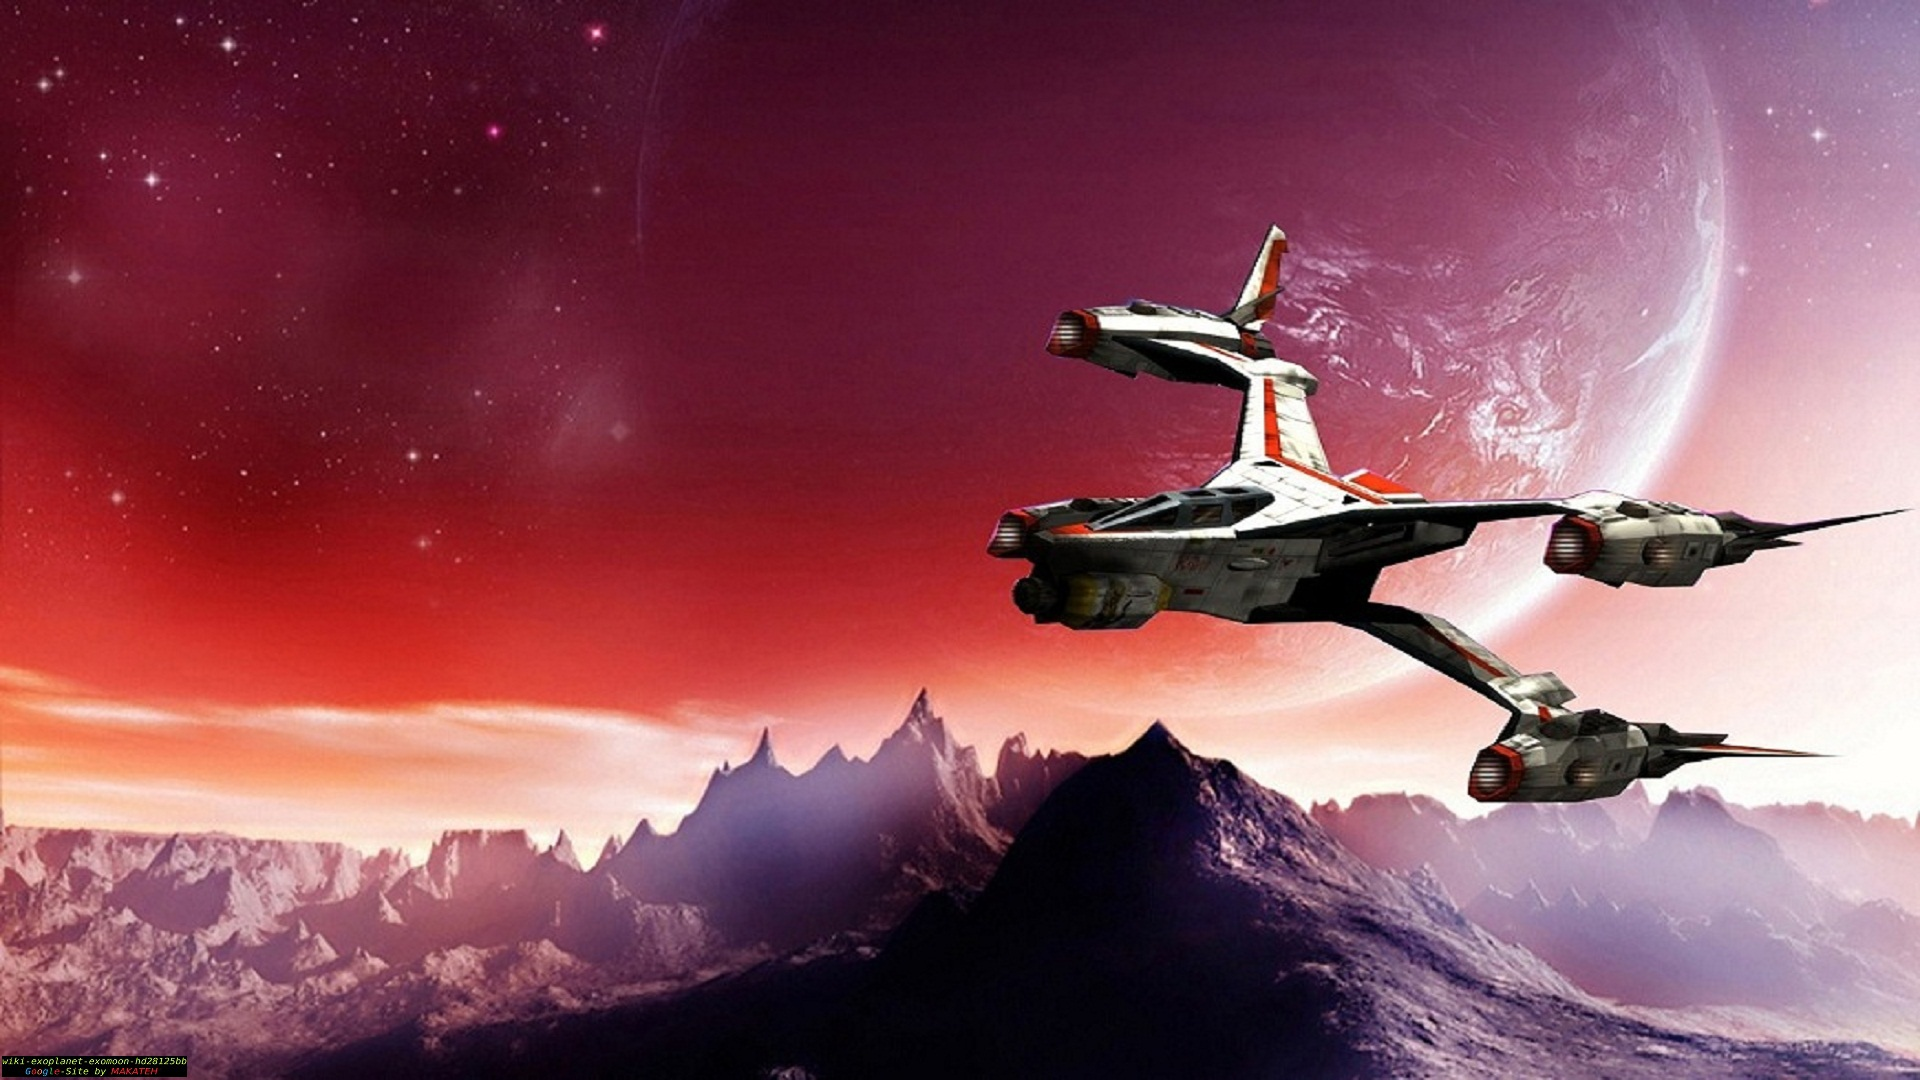 Babylon 5 Wallpapers, Pictures, Images